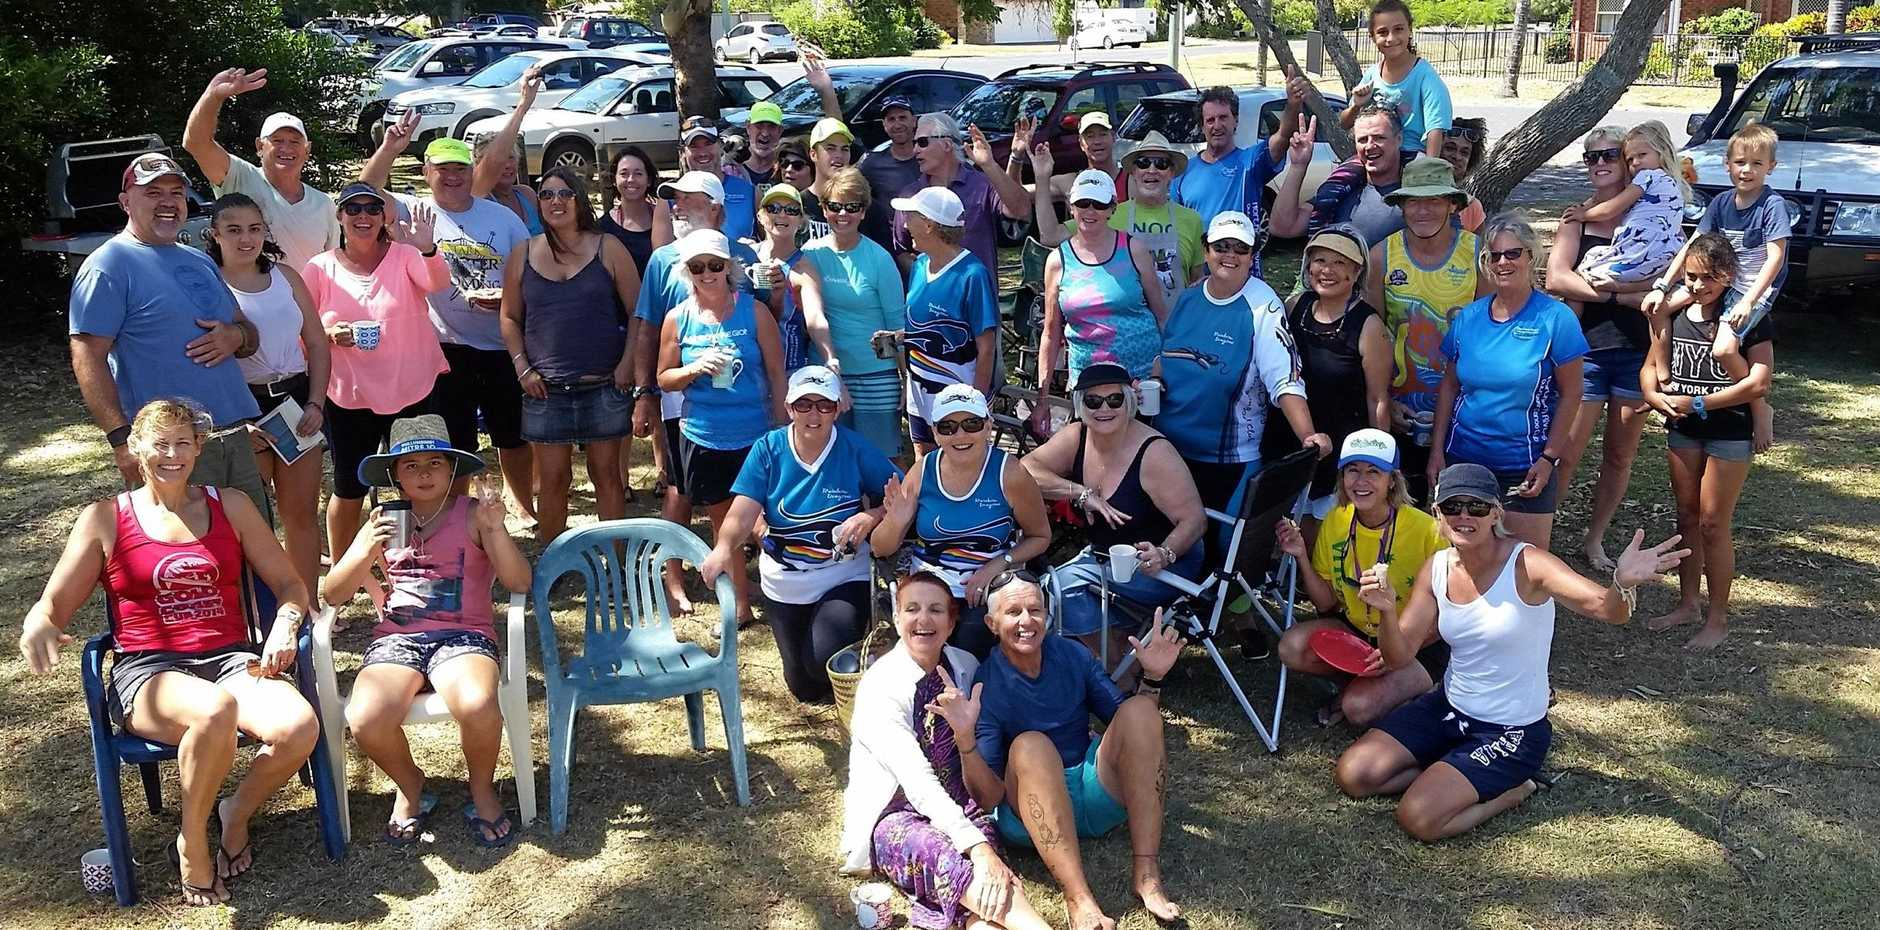 OUTRIGGERS: Northern Rivers Outrigger Canoe Club at their Australia Day Paddle event.